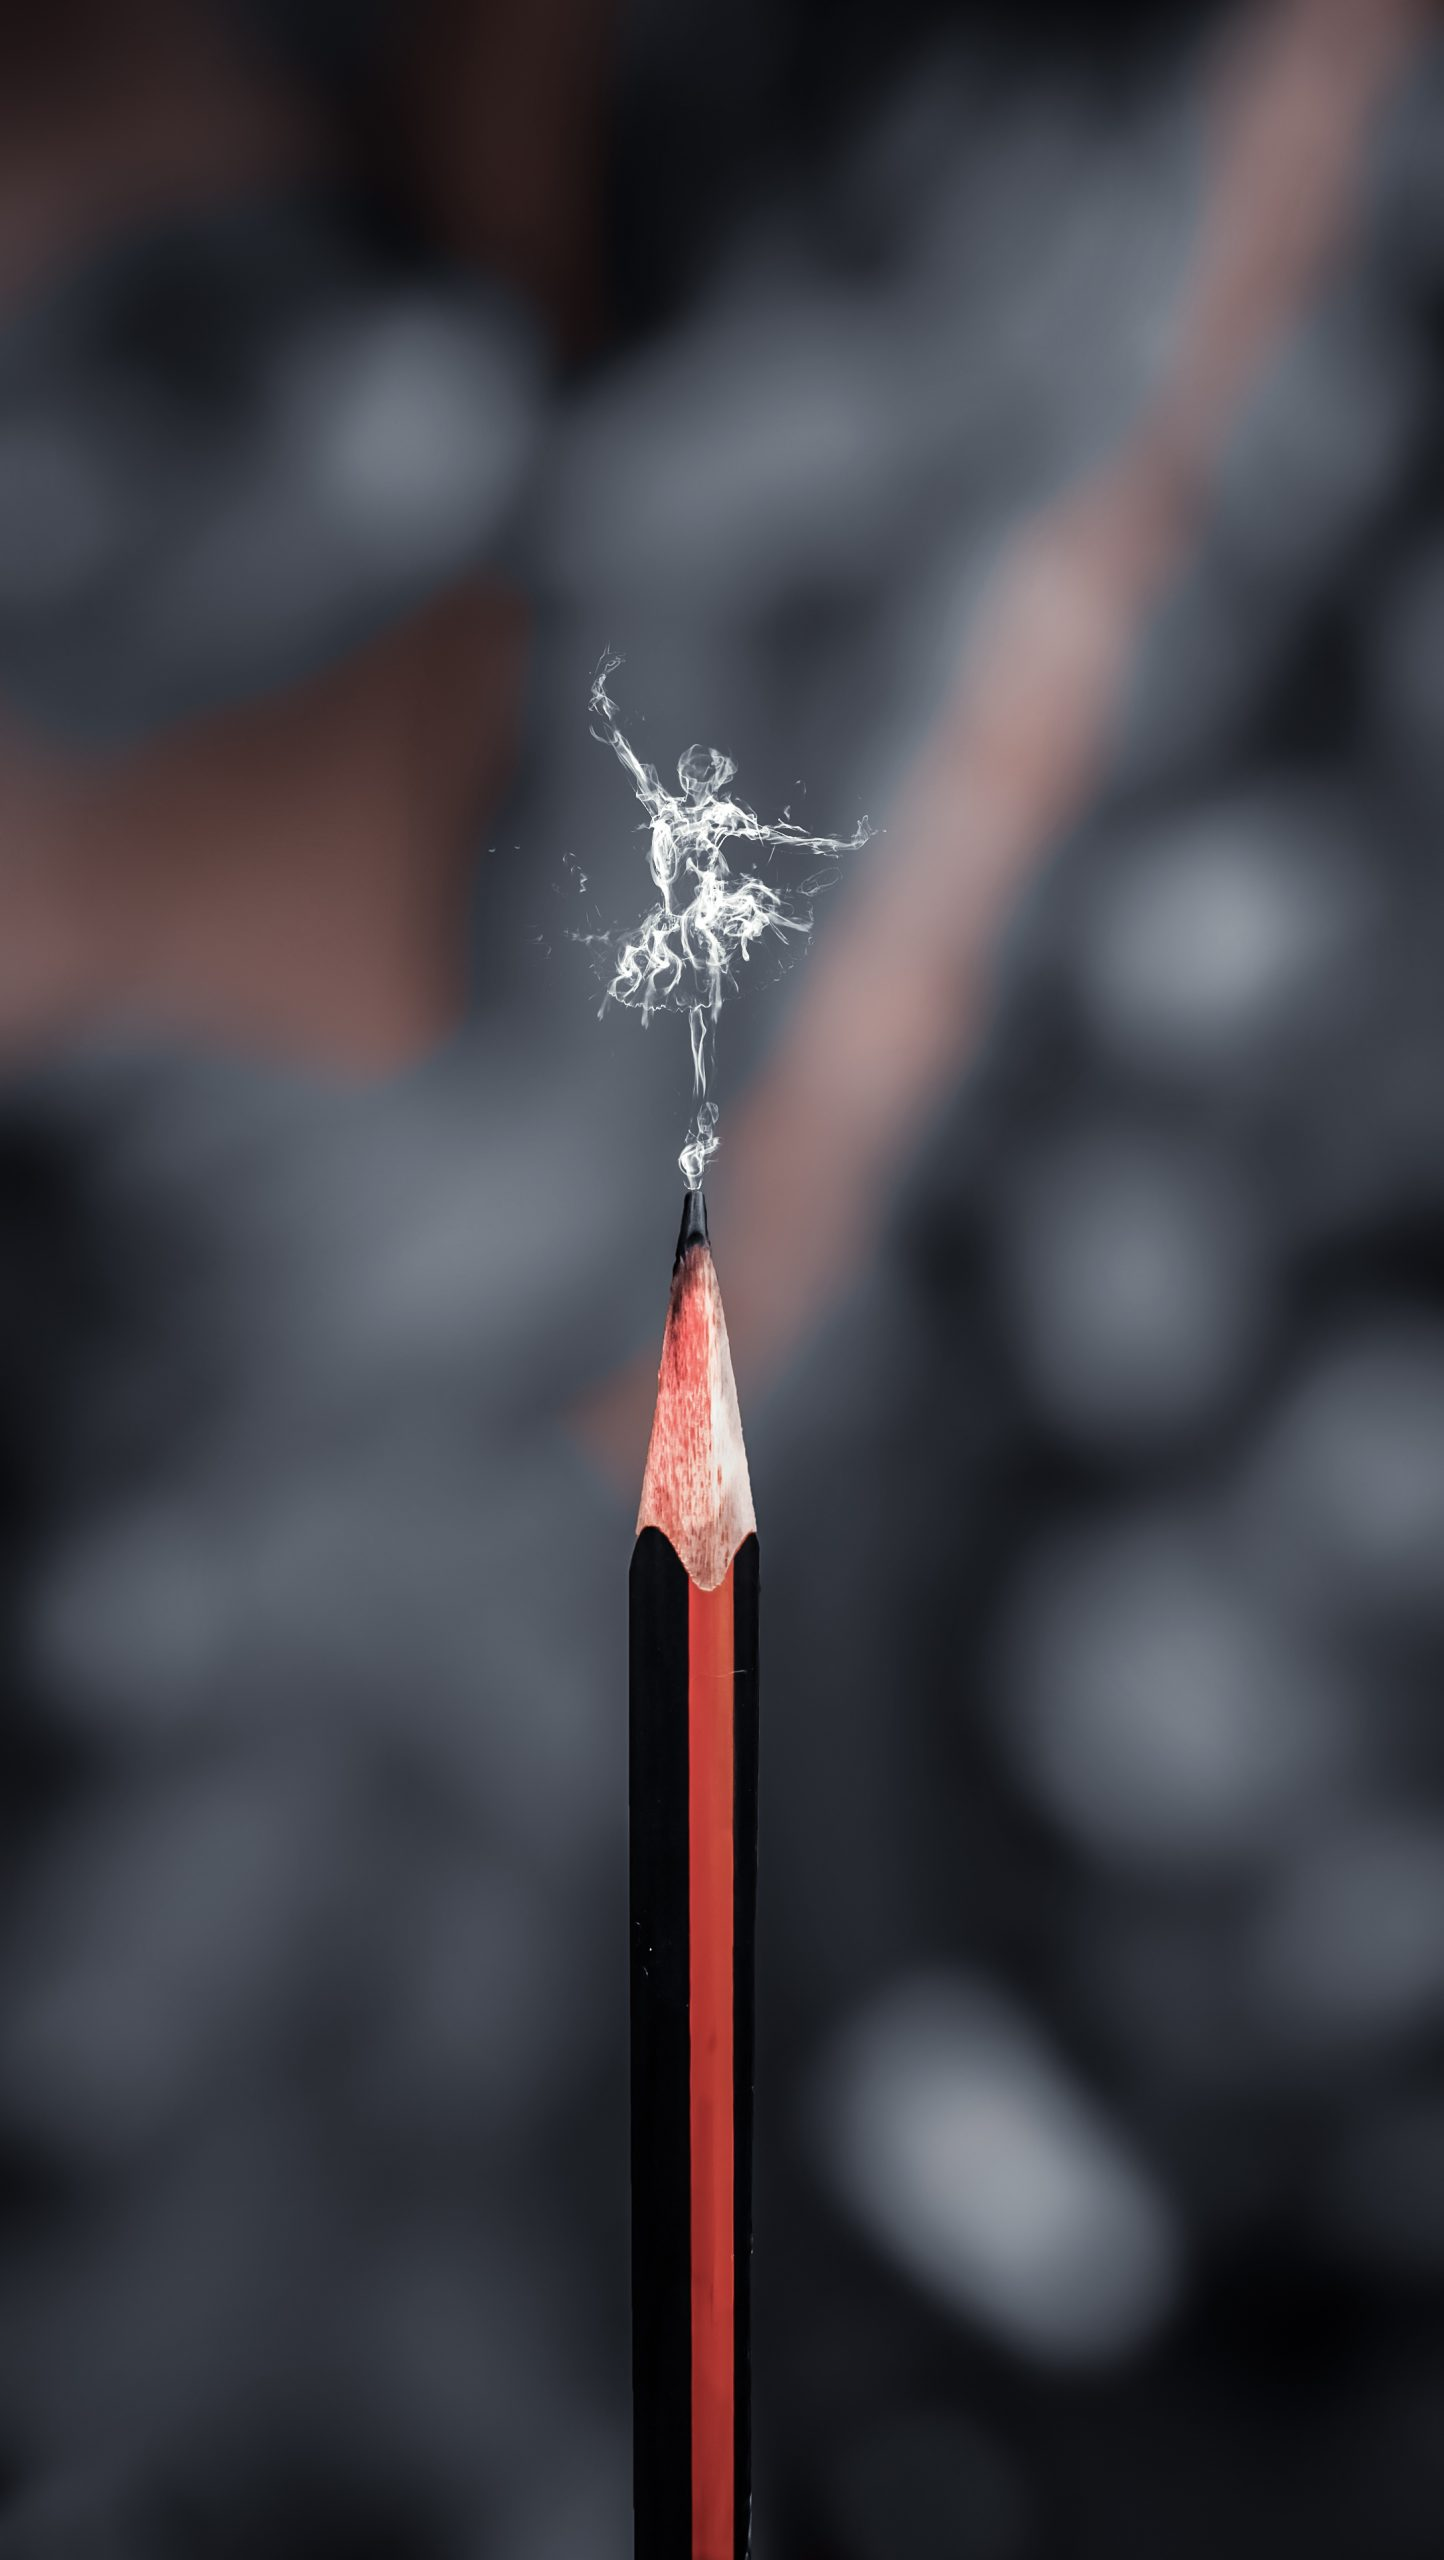 Dance illustration on a pencil tip